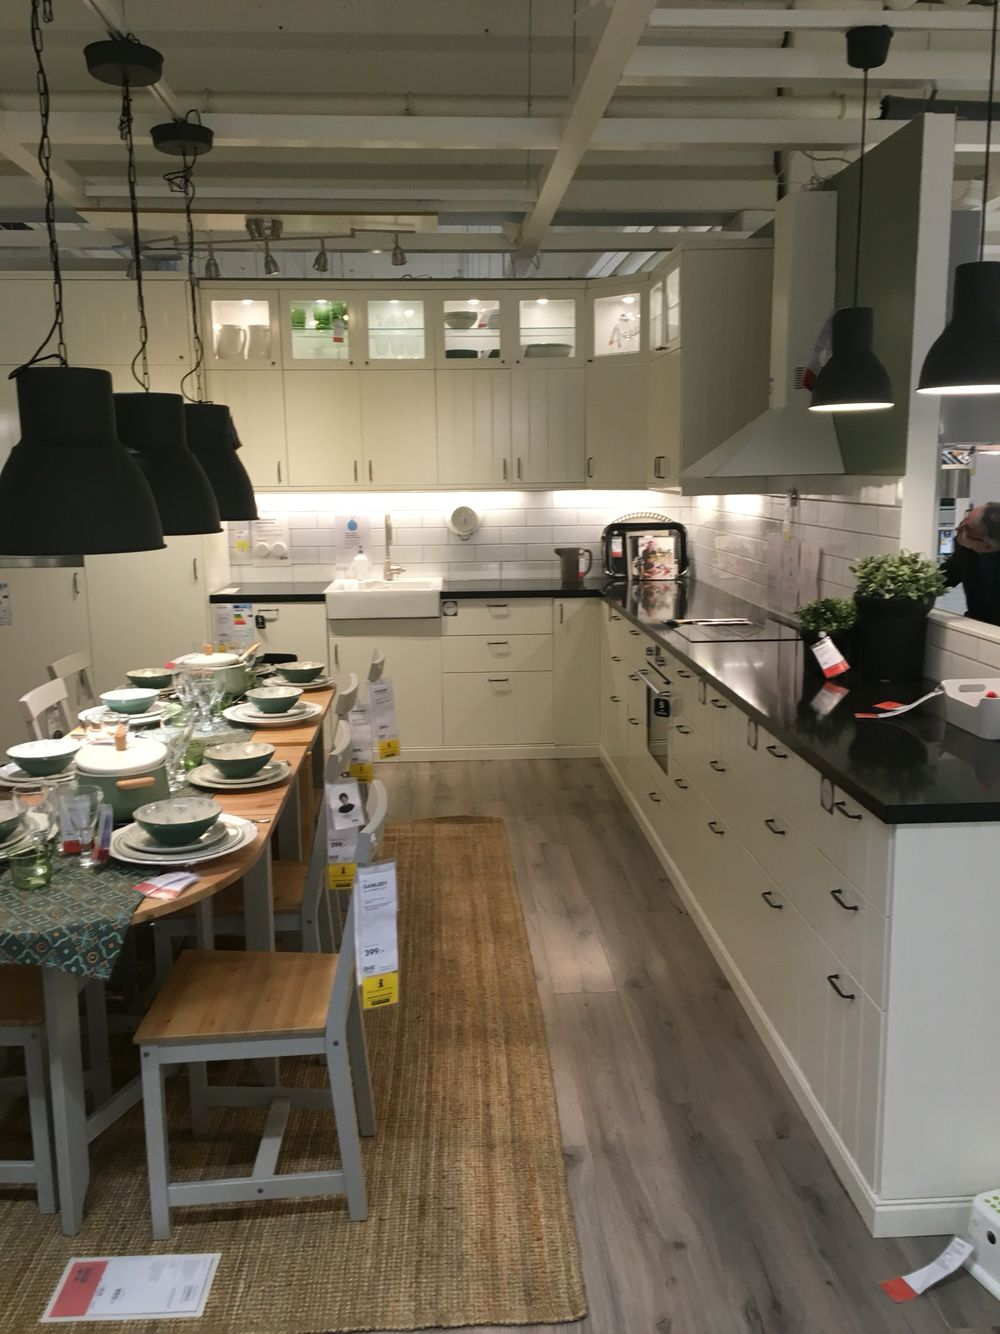 Ikea Küchenfront Hittarp Ikea Kitchen Hittarp Hittarp In 2019 Ikea Kitchen Ikea